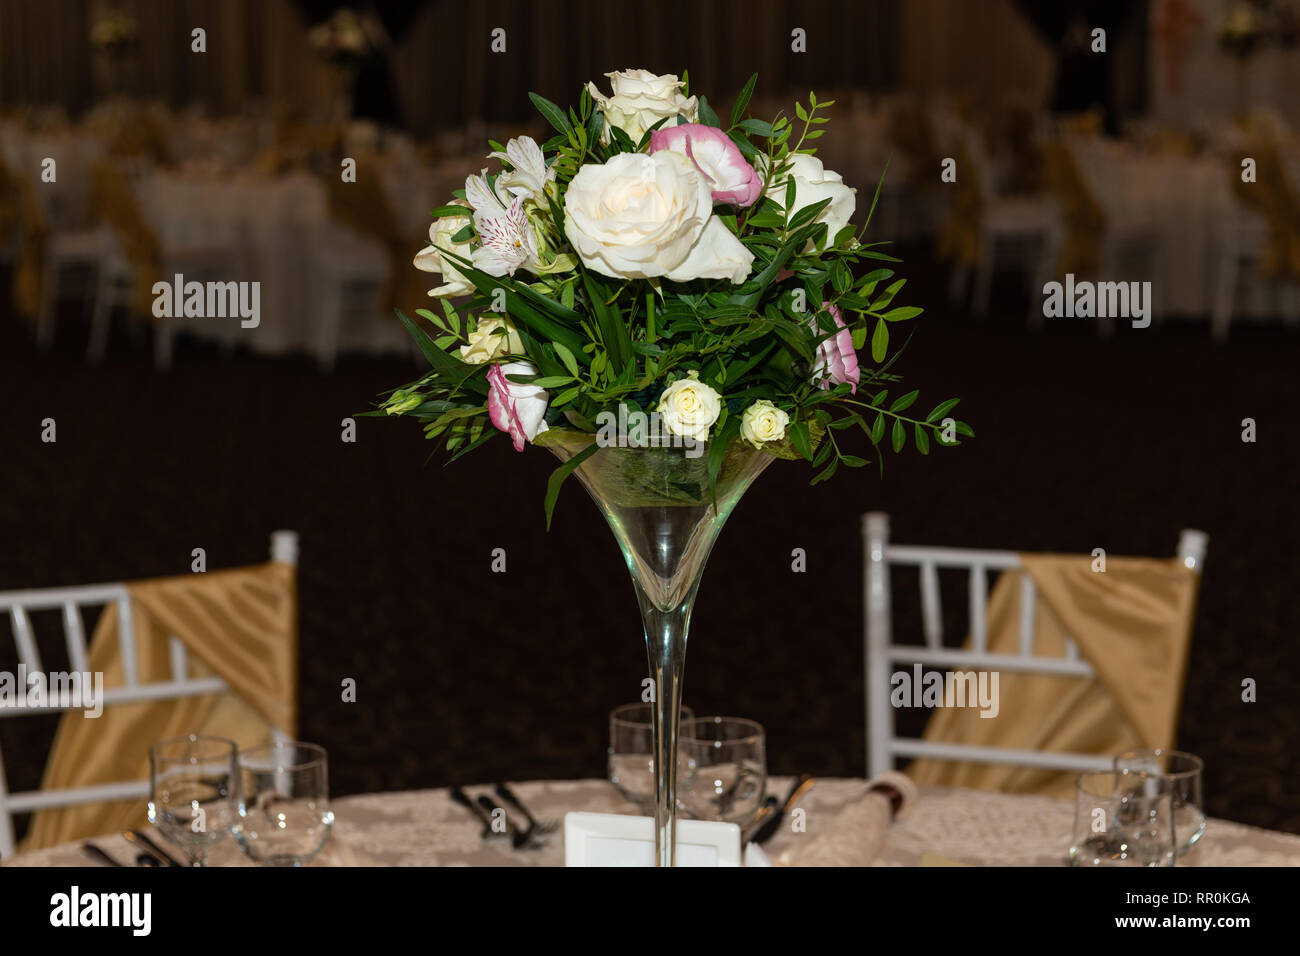 Tremendous Floral Centerpiece At Luxury Elegant Wedding Reception Best Image Libraries Weasiibadanjobscom